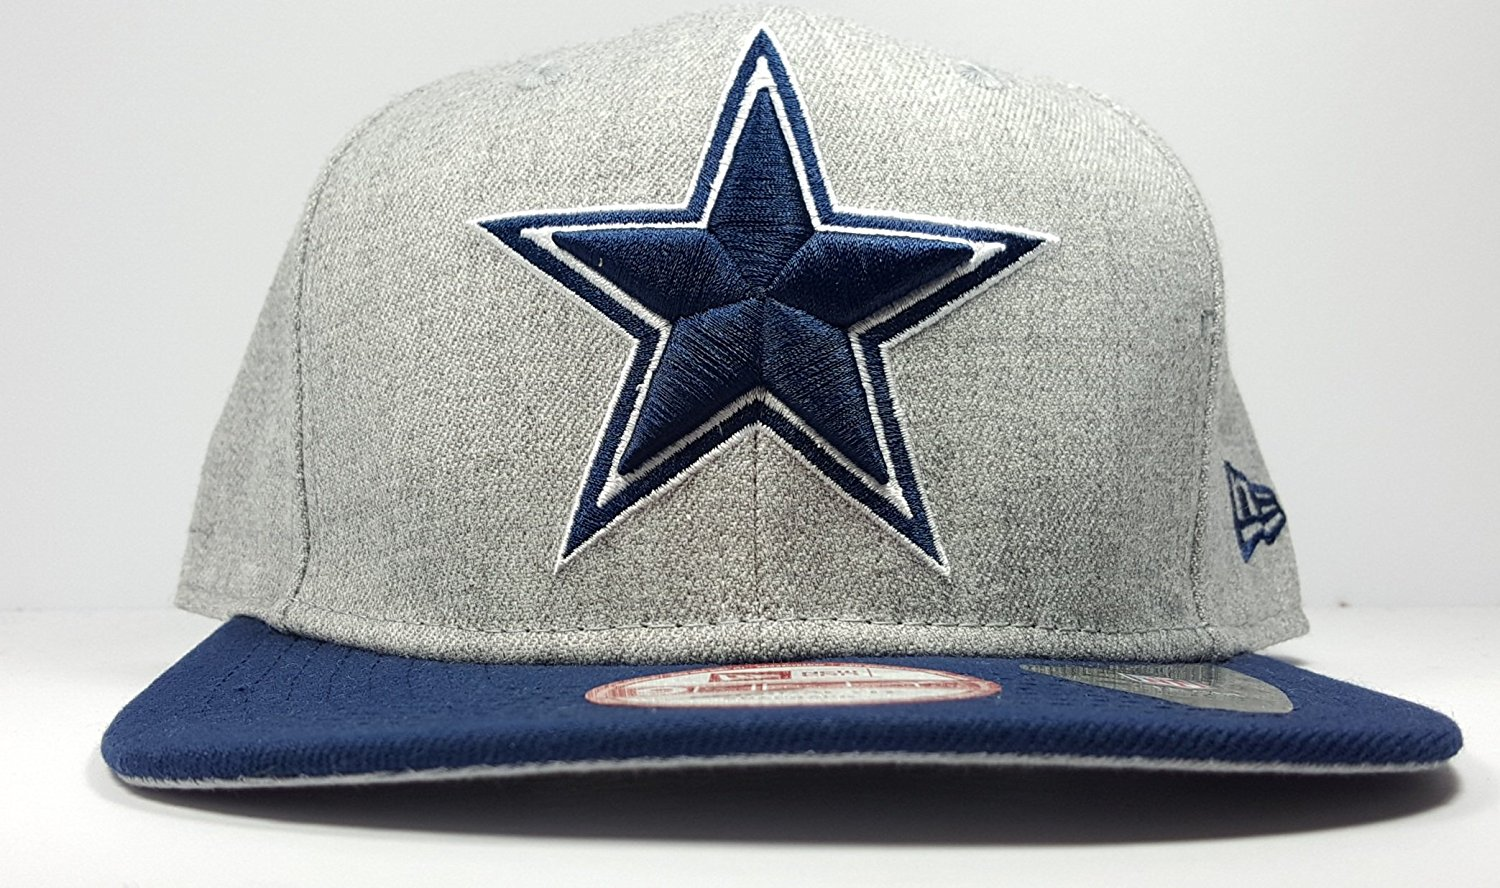 a43ab8a197f79 Buy Dallas Cowboys LOGO GRAND Gray SNAPBACK 9Fifty New Era NFL Hat   OSFM  in Cheap Price on m.alibaba.com